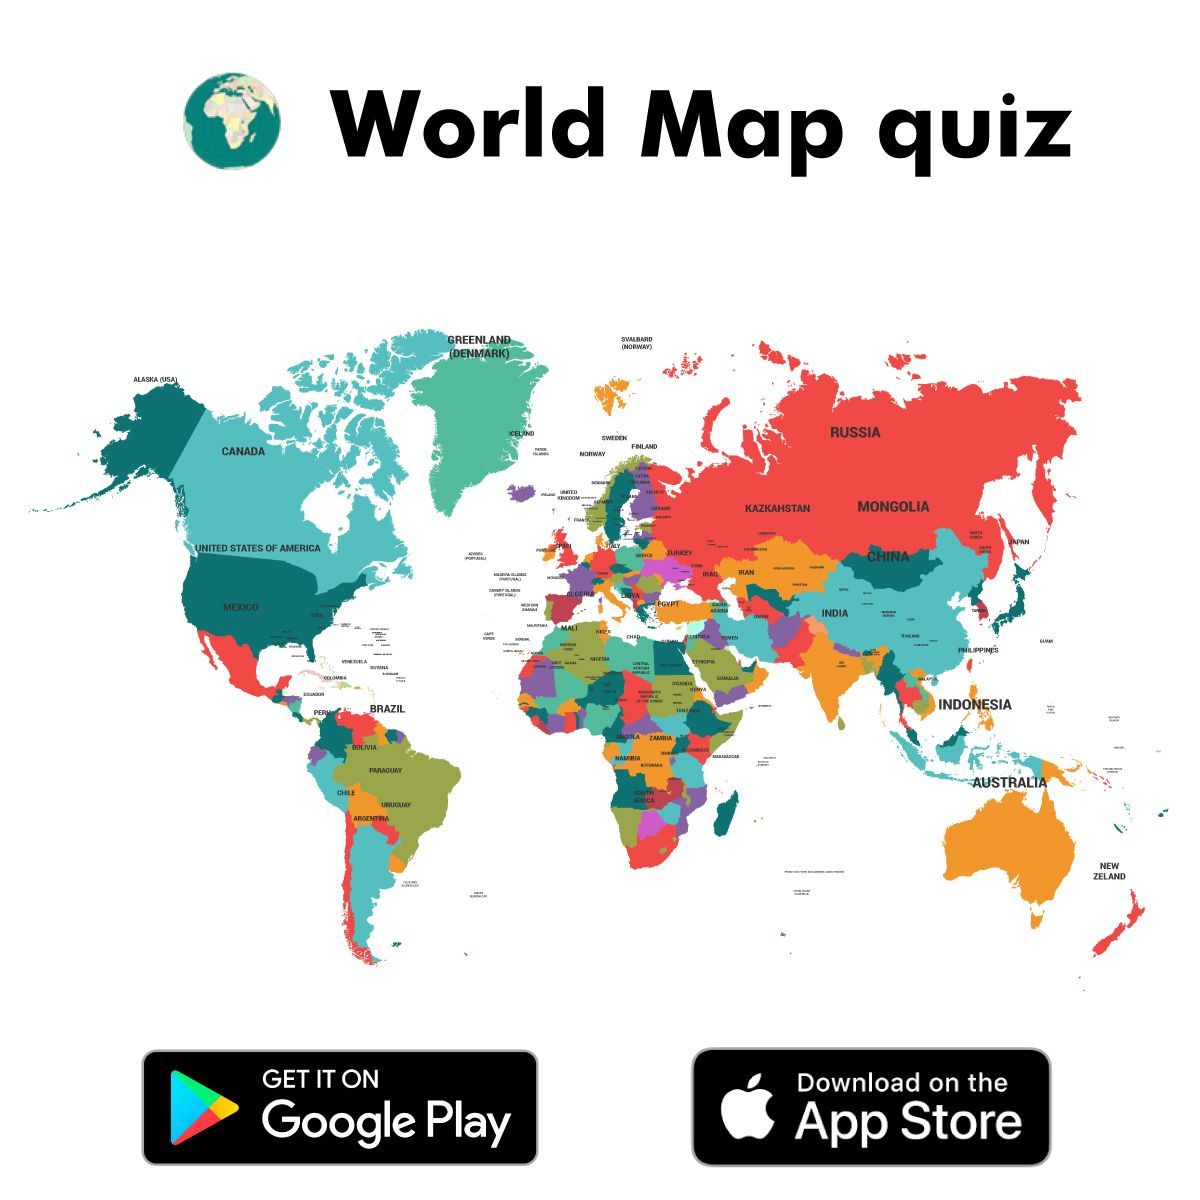 World Map quiz app is an interesting app developed for kids ... on canada map symbols, canada map posters, canada map template, alaska games, canada map google earth, canada map activity, canada map fishing, canada map for teachers, canada map art, canada map exercise, canada games pool, canada map with provinces labeled, canada map design, canada map office, canada map coloring sheet, canada states games, canada map language, disney junior canada games, canada games online, canada map with states and capitals,